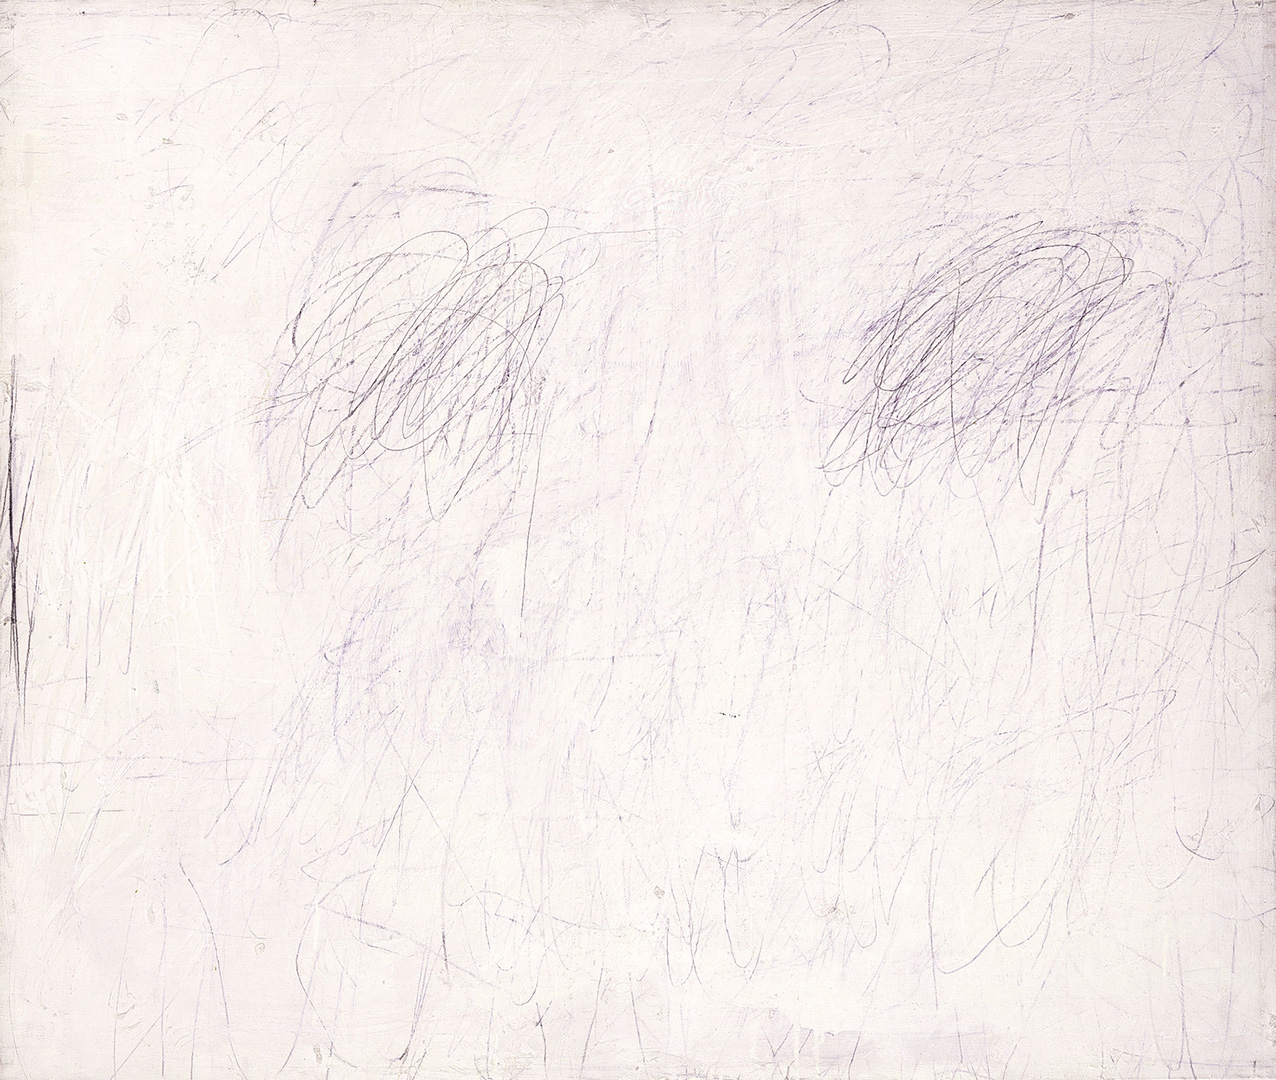 Cy Twombly - Untitled [New York City], 1955, oil based house paint and lead pencil on canvas